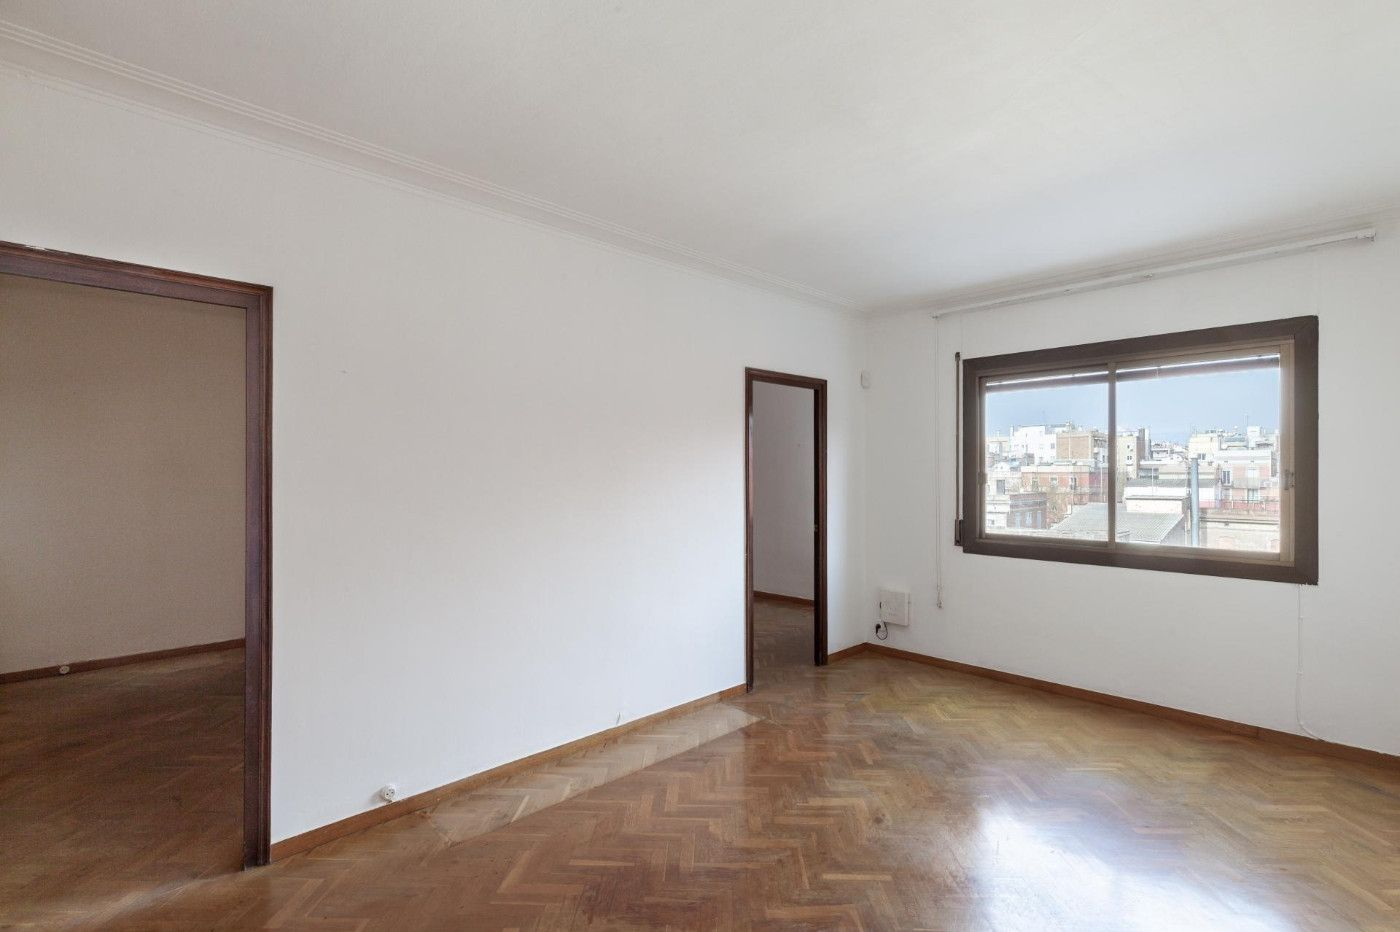 Apartament en Carrer Marques De Campo Sagrado, 9